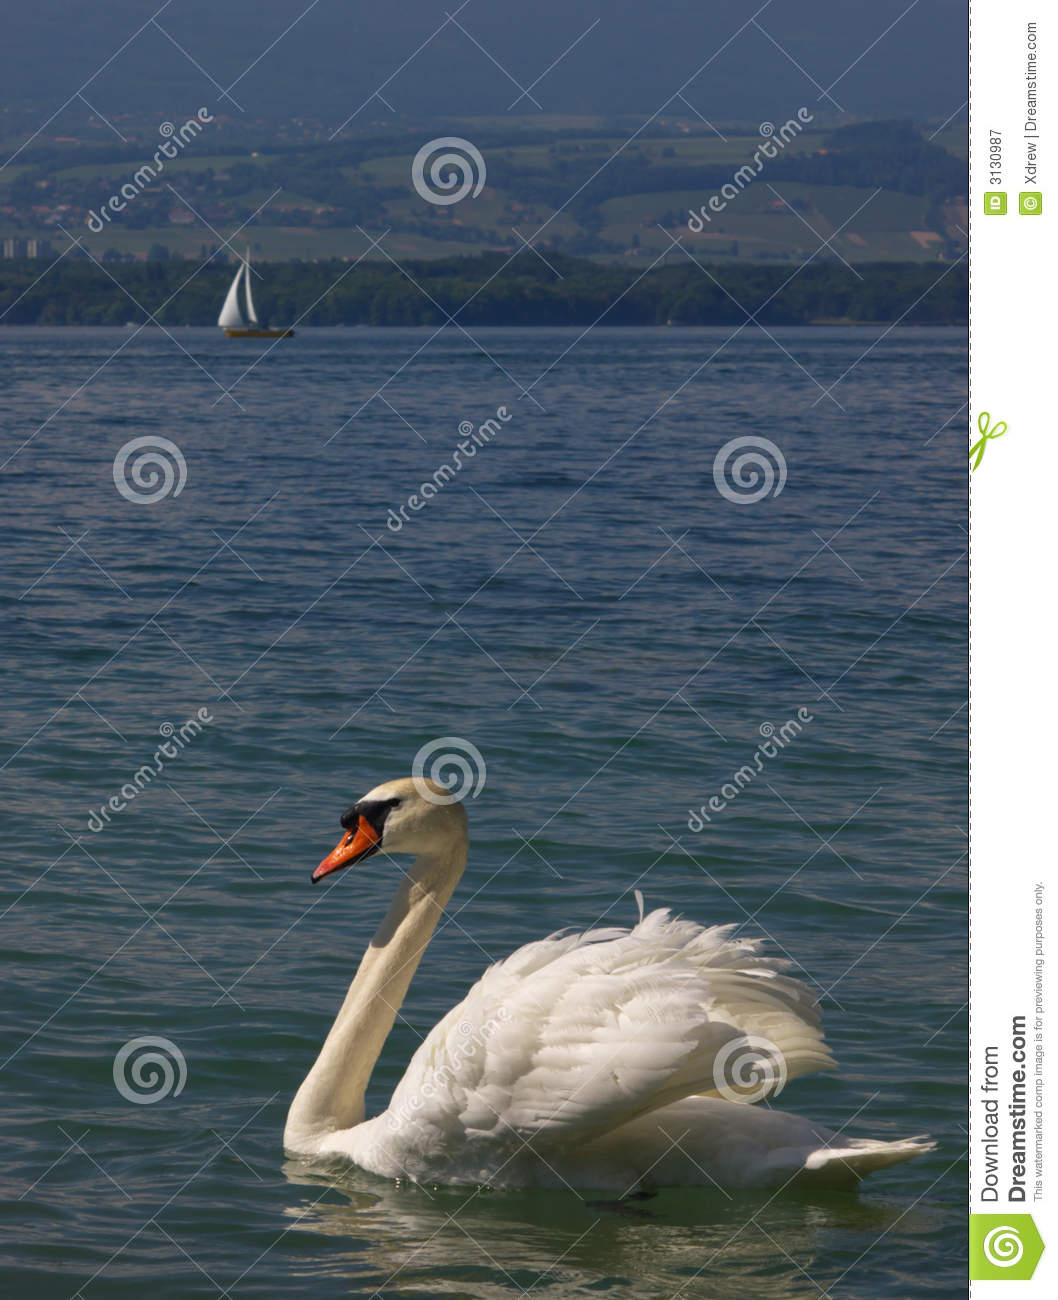 White swan and yacht